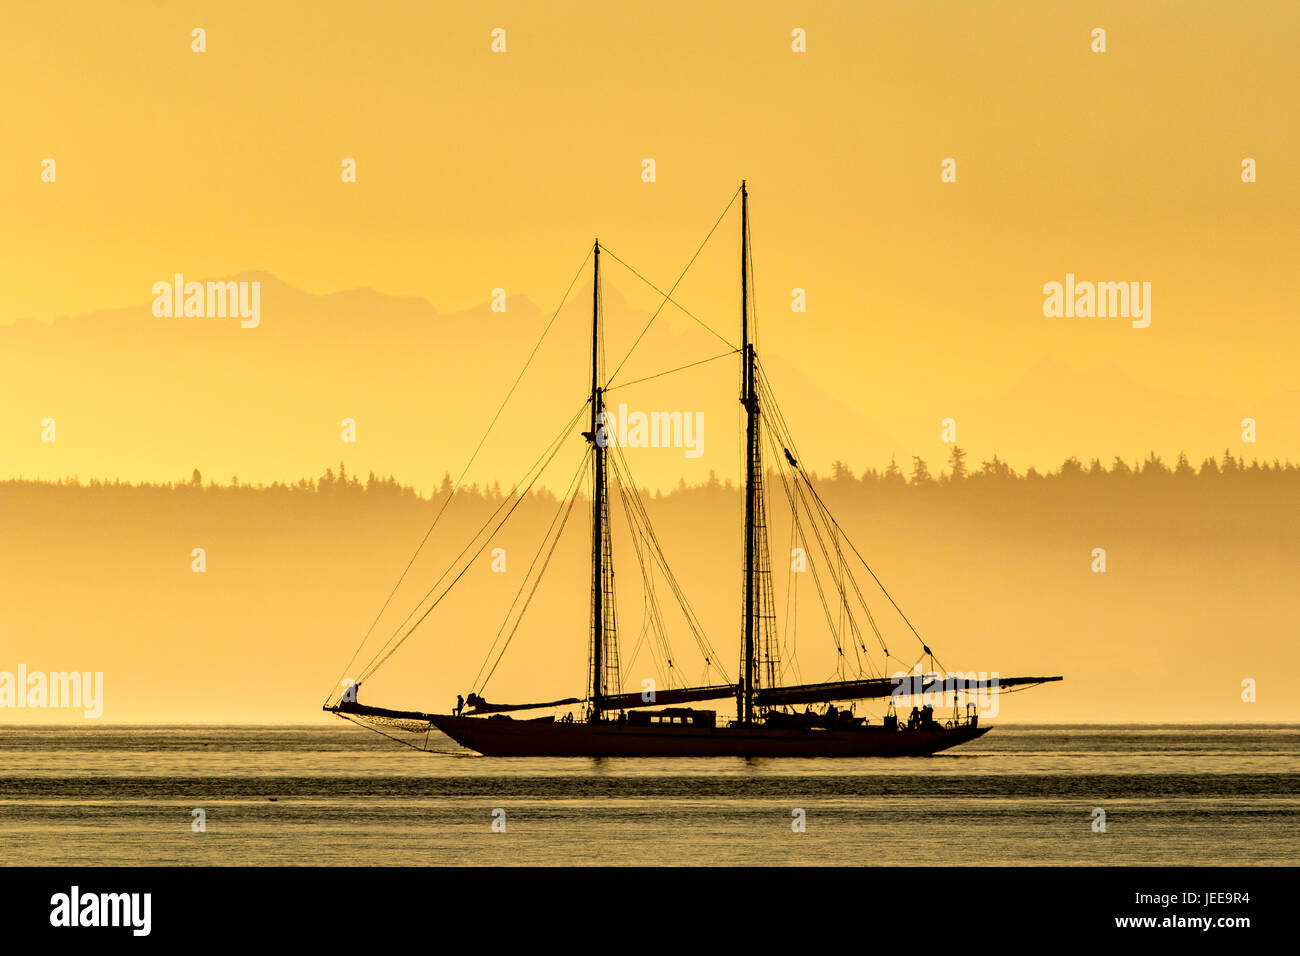 Sailing boat, sailboat wooden schooner yacht near Port Townsend